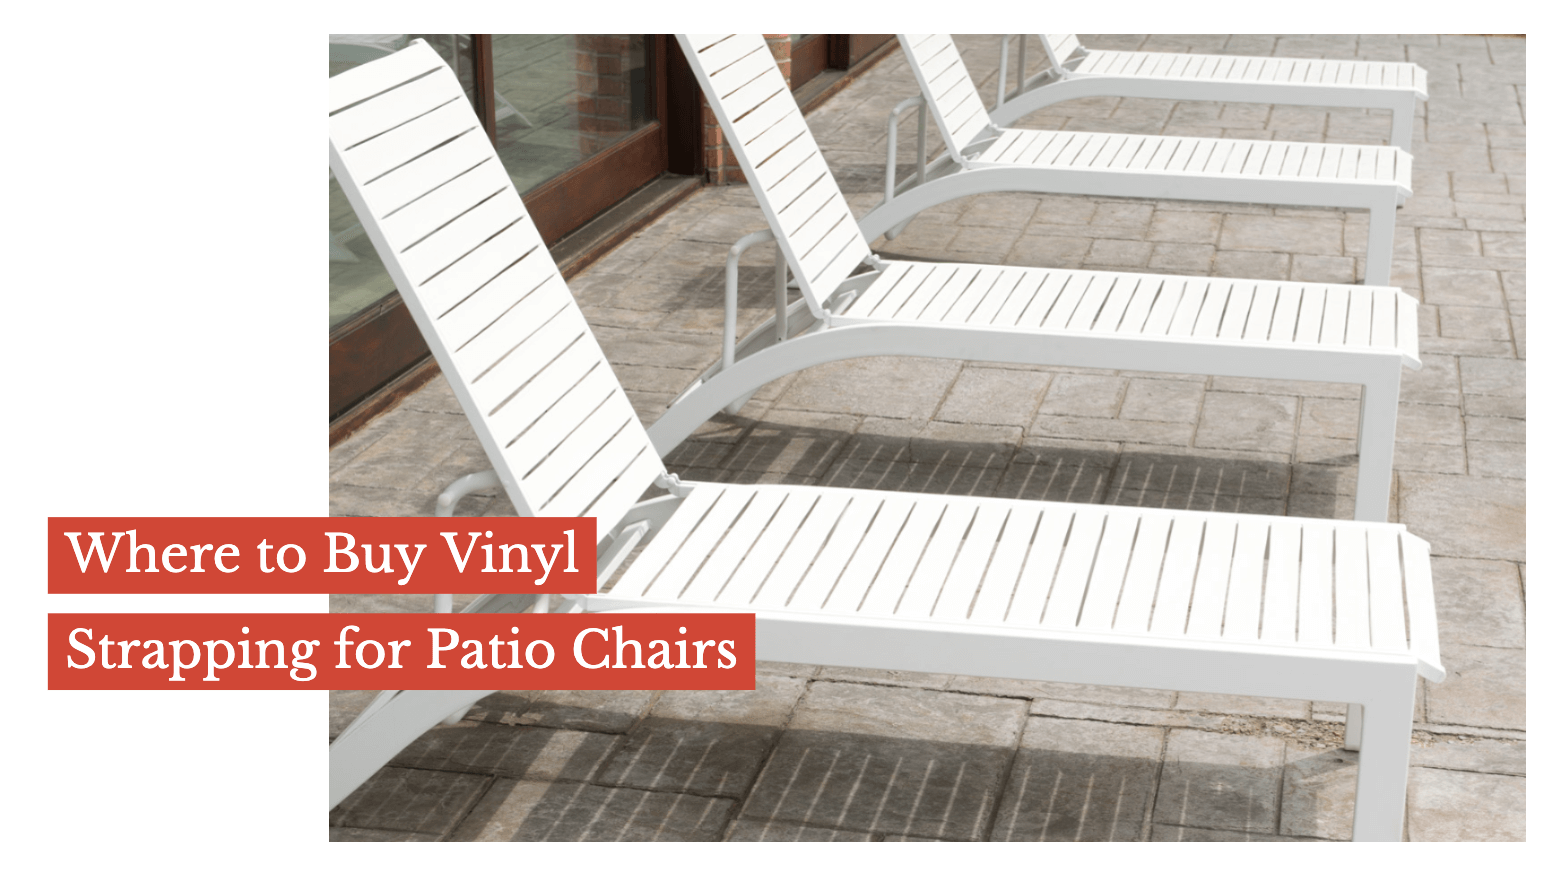 Where to Buy Vinyl Strapping for Patio Chairs